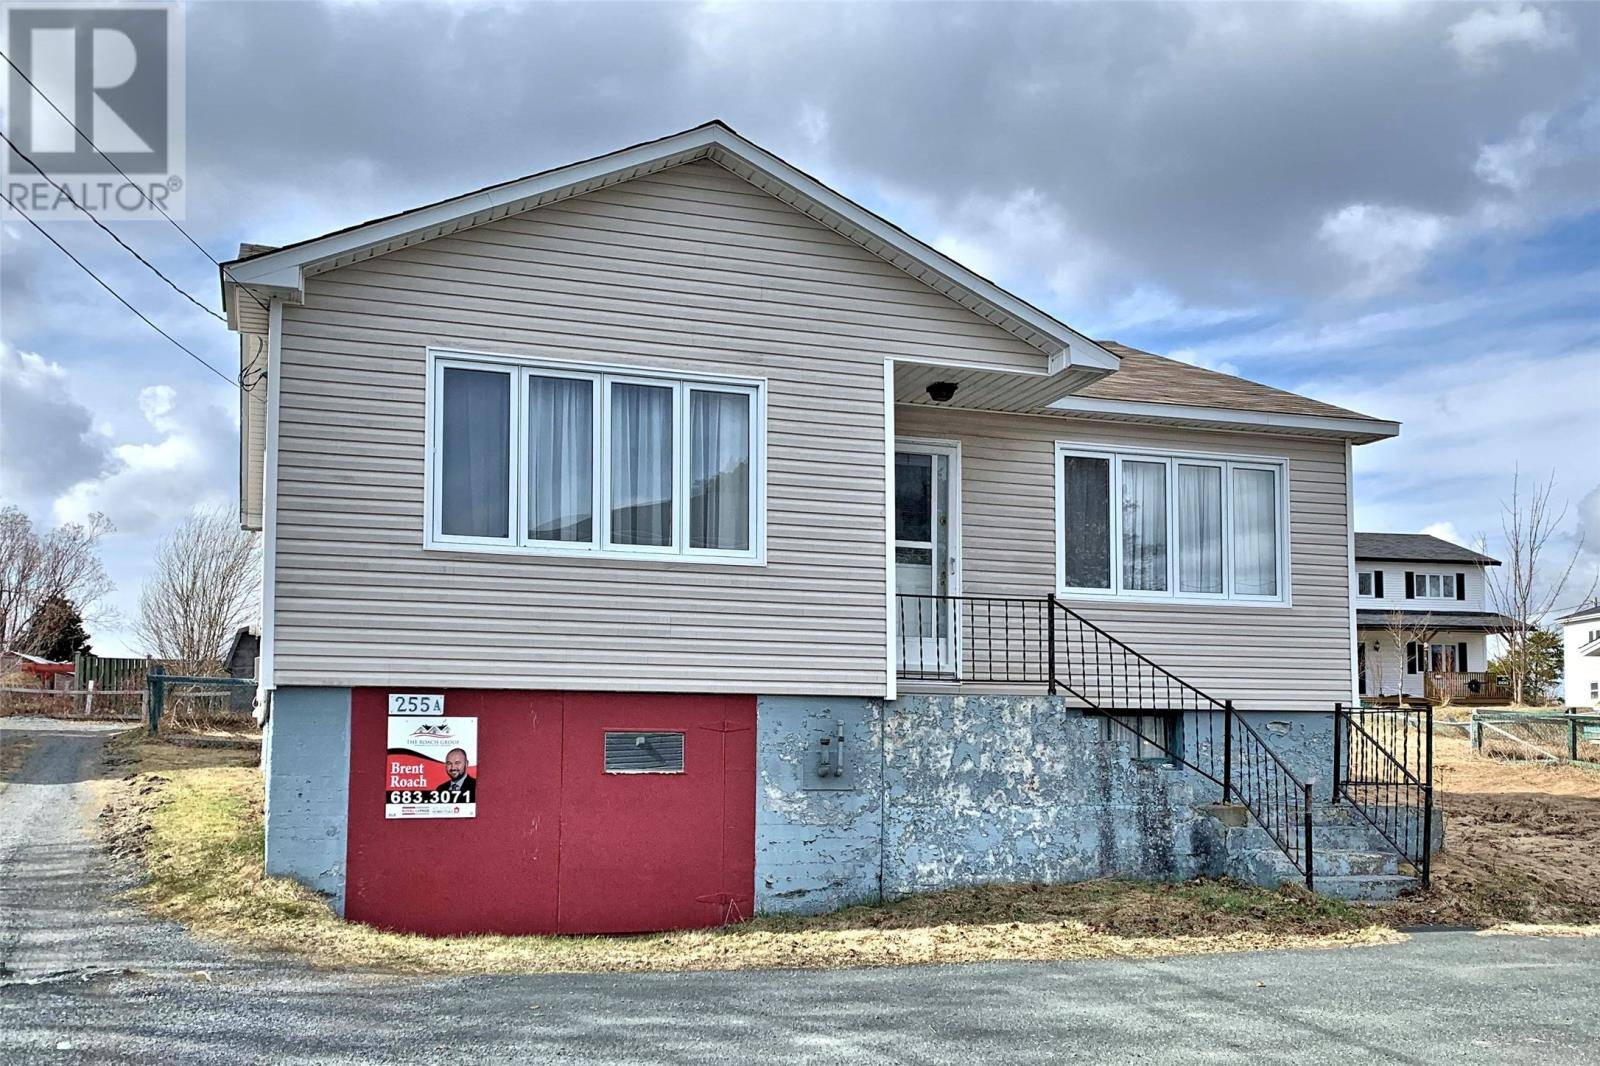 House for sale at 255 Water St Bay Roberts Newfoundland - MLS: 1208971